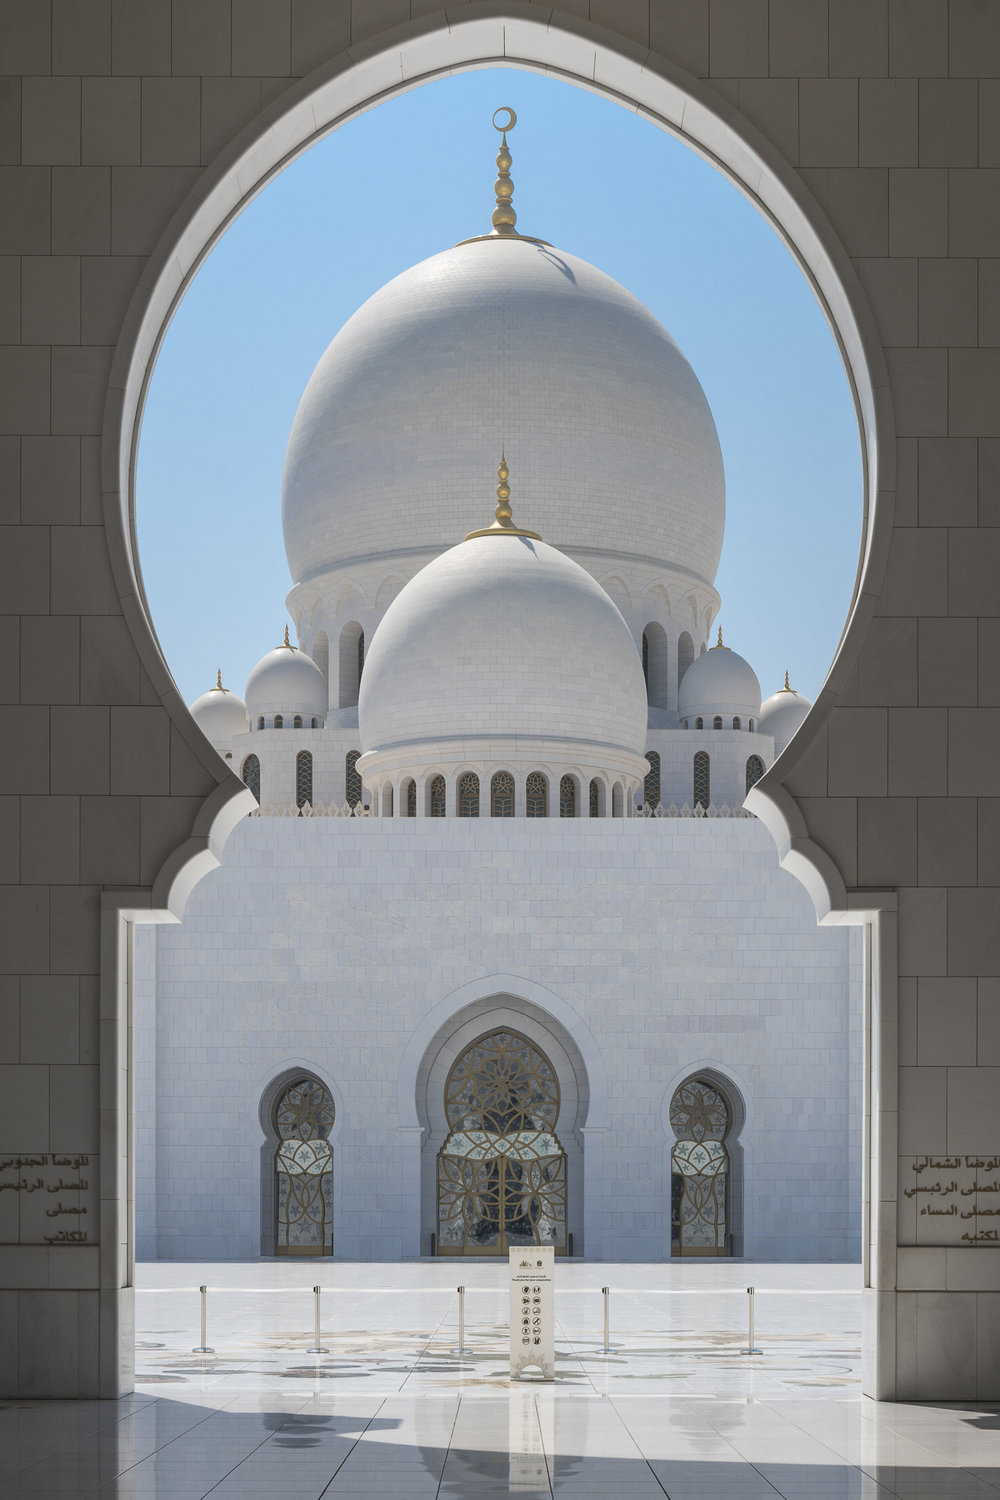 THE Grand Mosque - Abu Dhabi PHOTOGRAPHY: ALEXANDER J.E. BRADLEY • NIKON D500 • AF-S NIKKOR 24-70mm Ƒ/2.8G ED @ 45MM •  Ƒ/11 • 1/400 • ISO 100